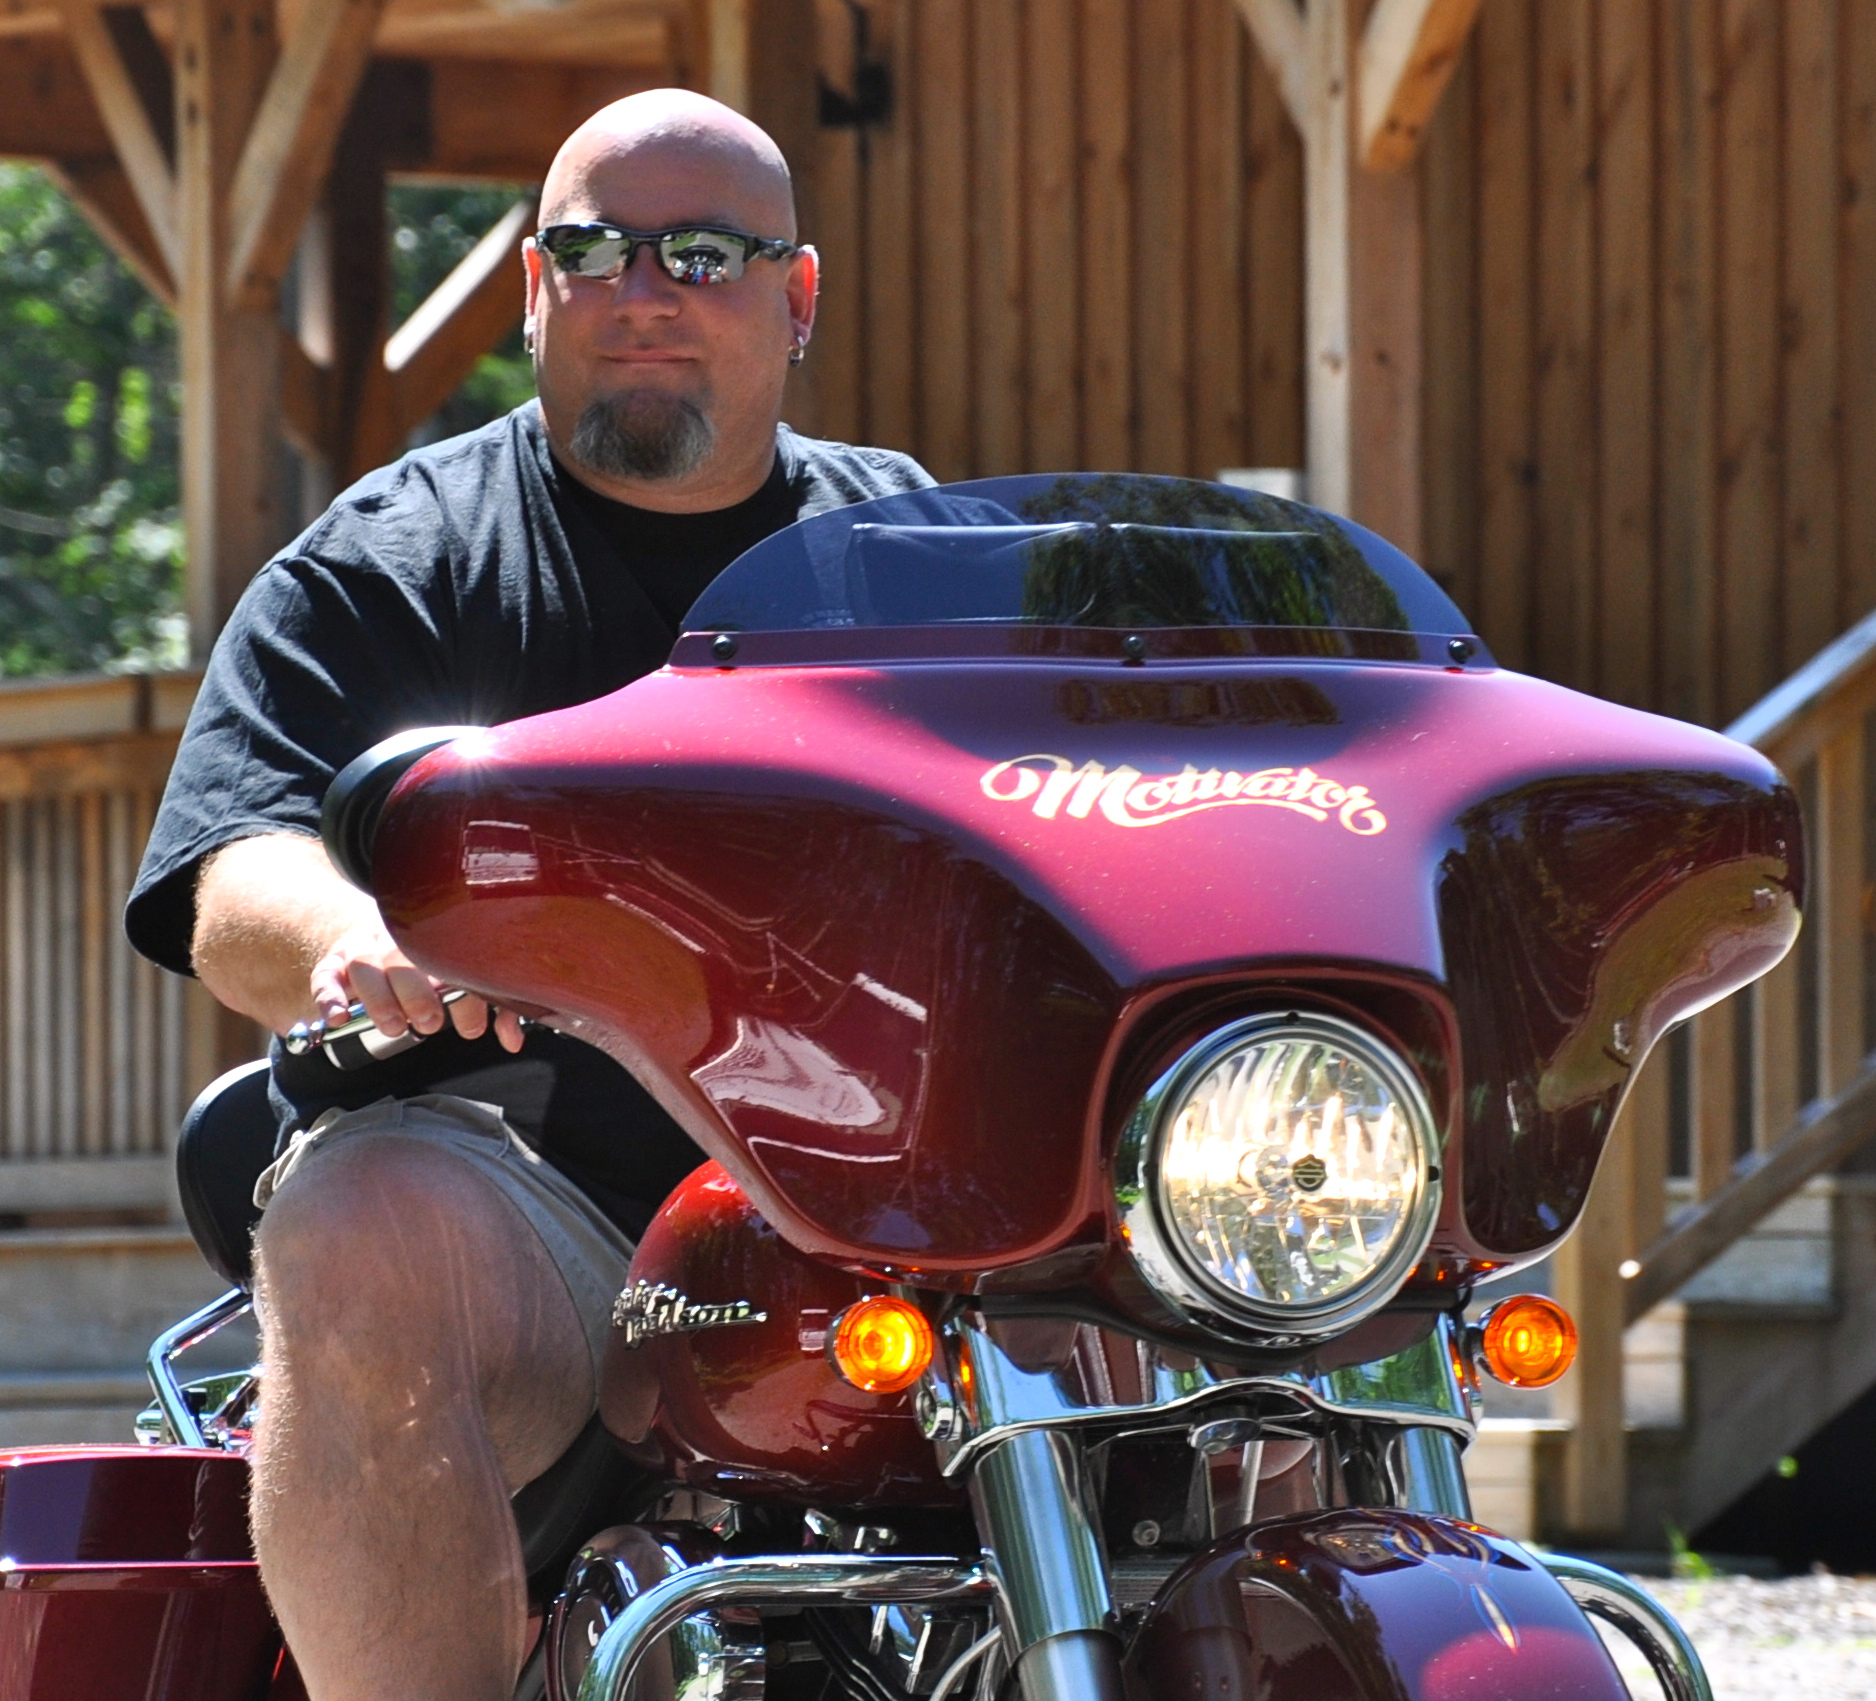 Jeff Yalden will lead a bunch of Harley Davidson riders on a ride to